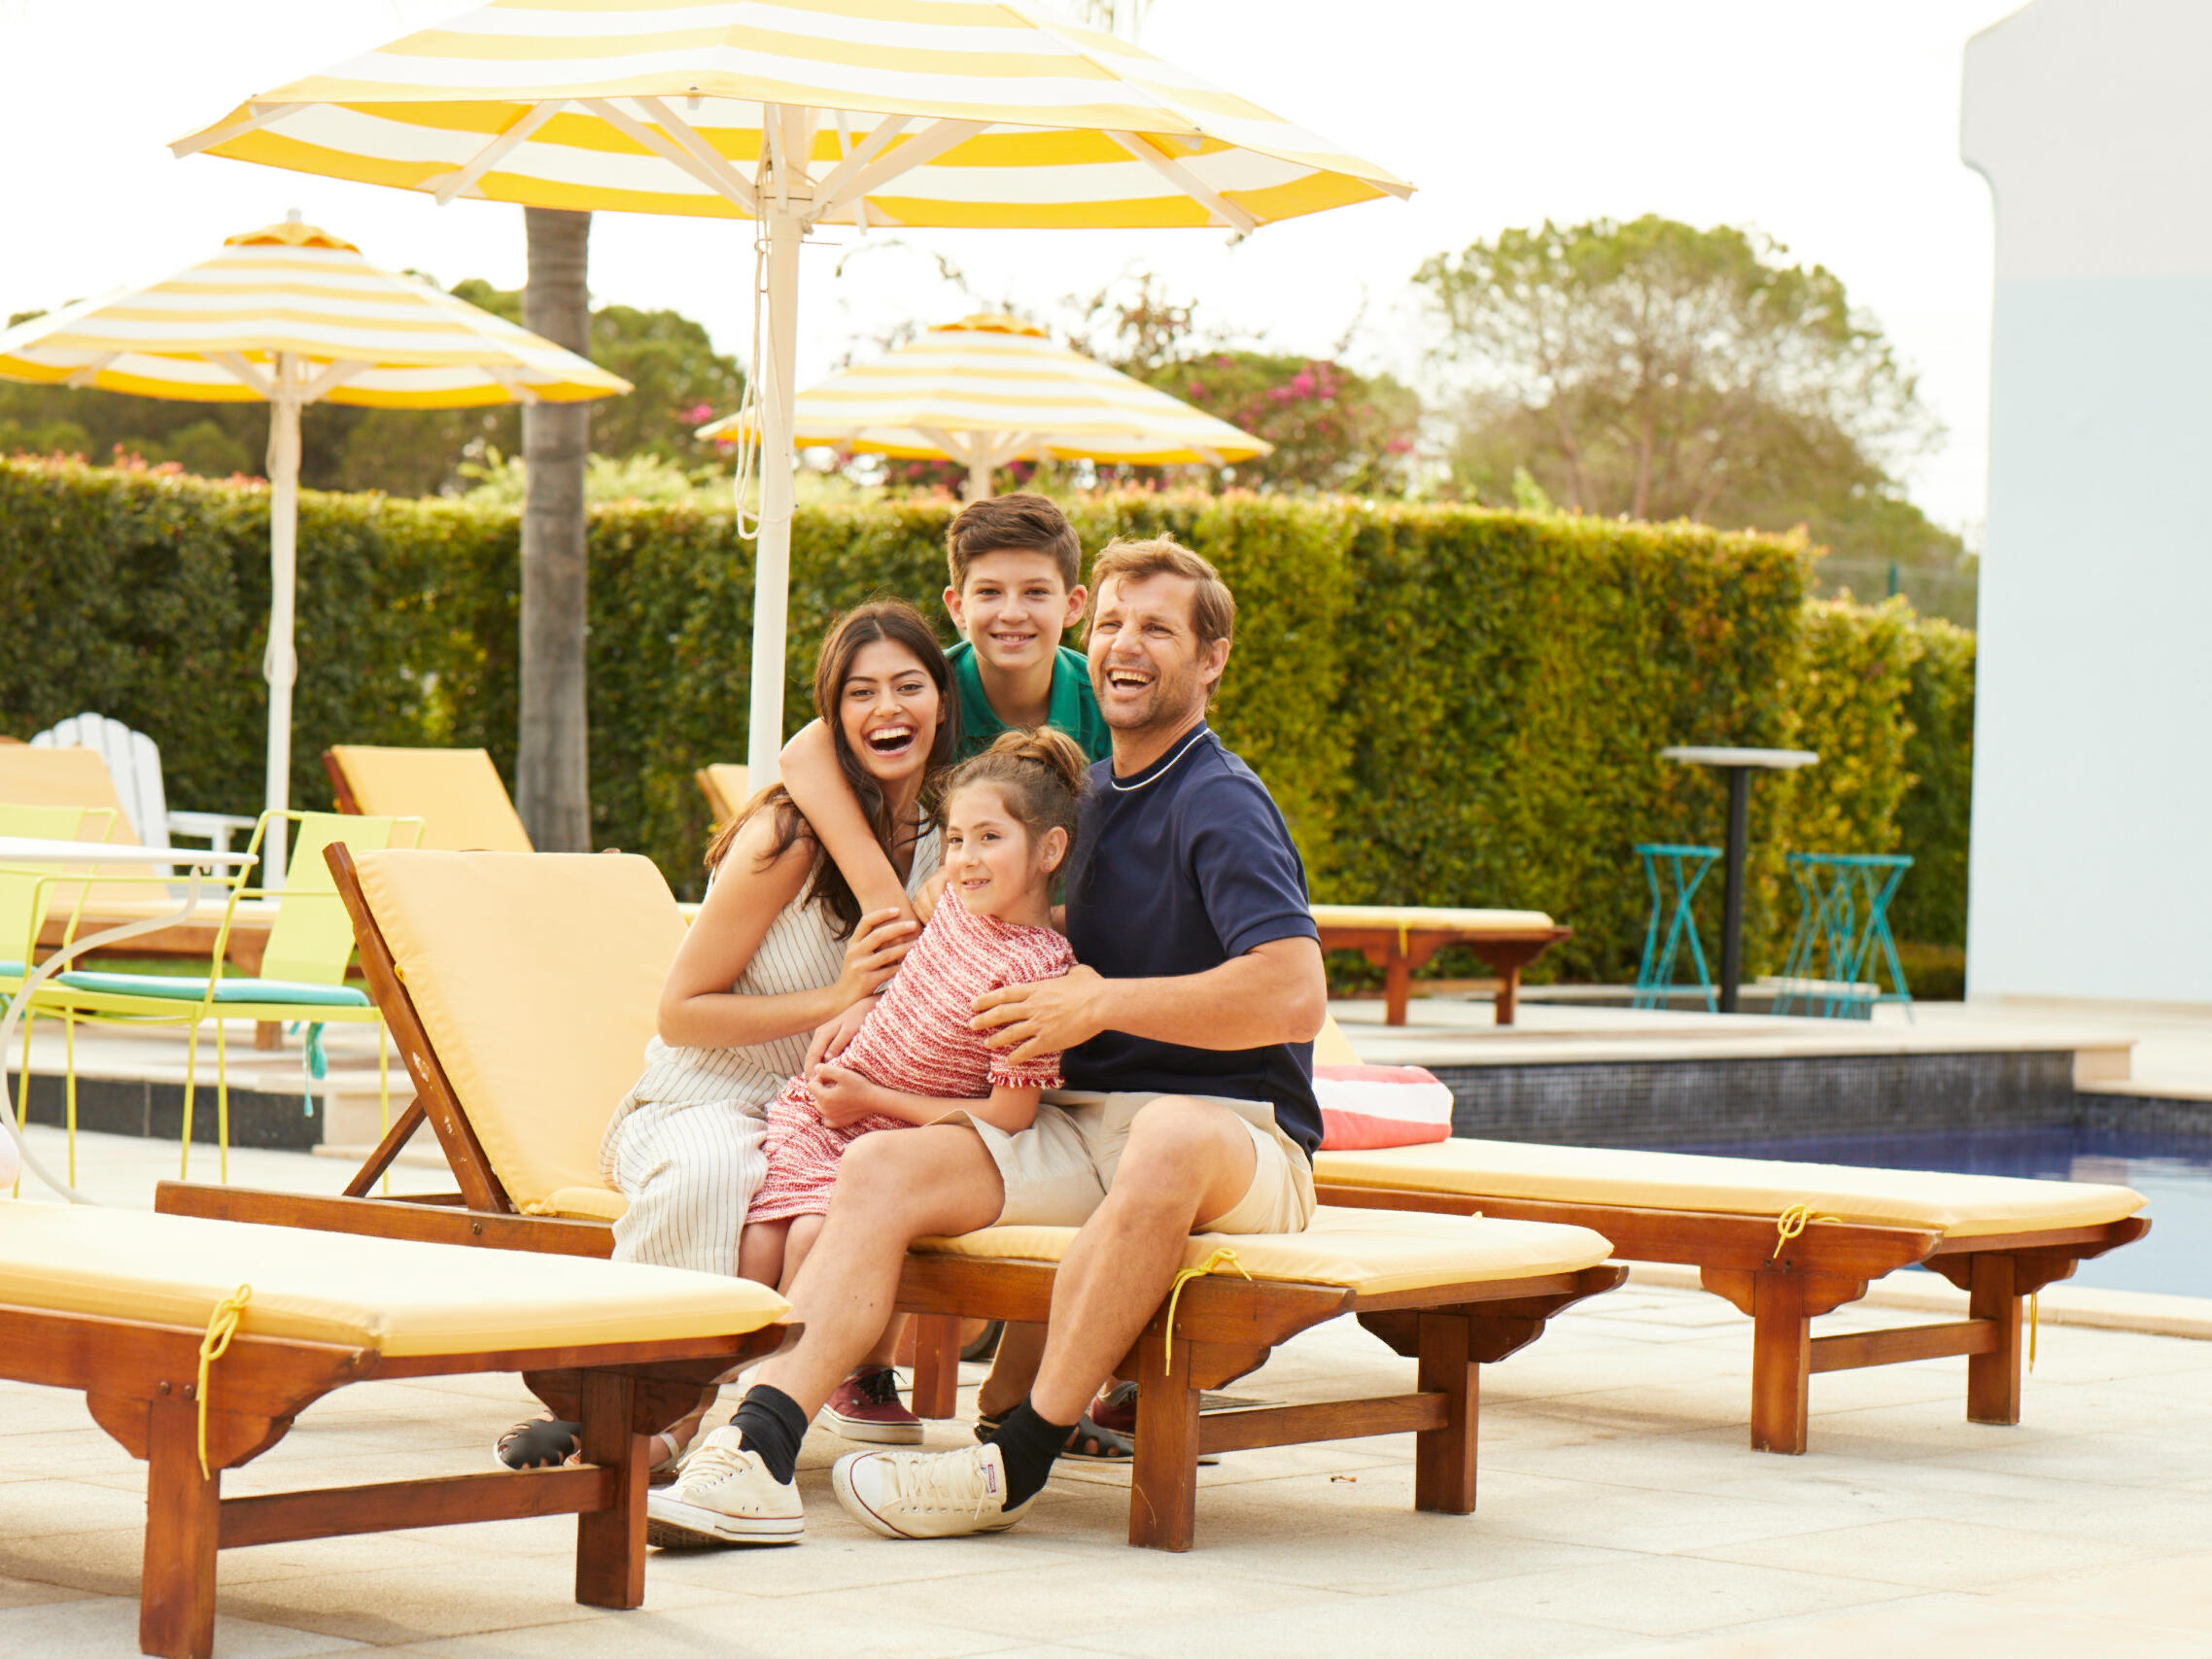 Happy Family at pool side -The Magnolia Hotel